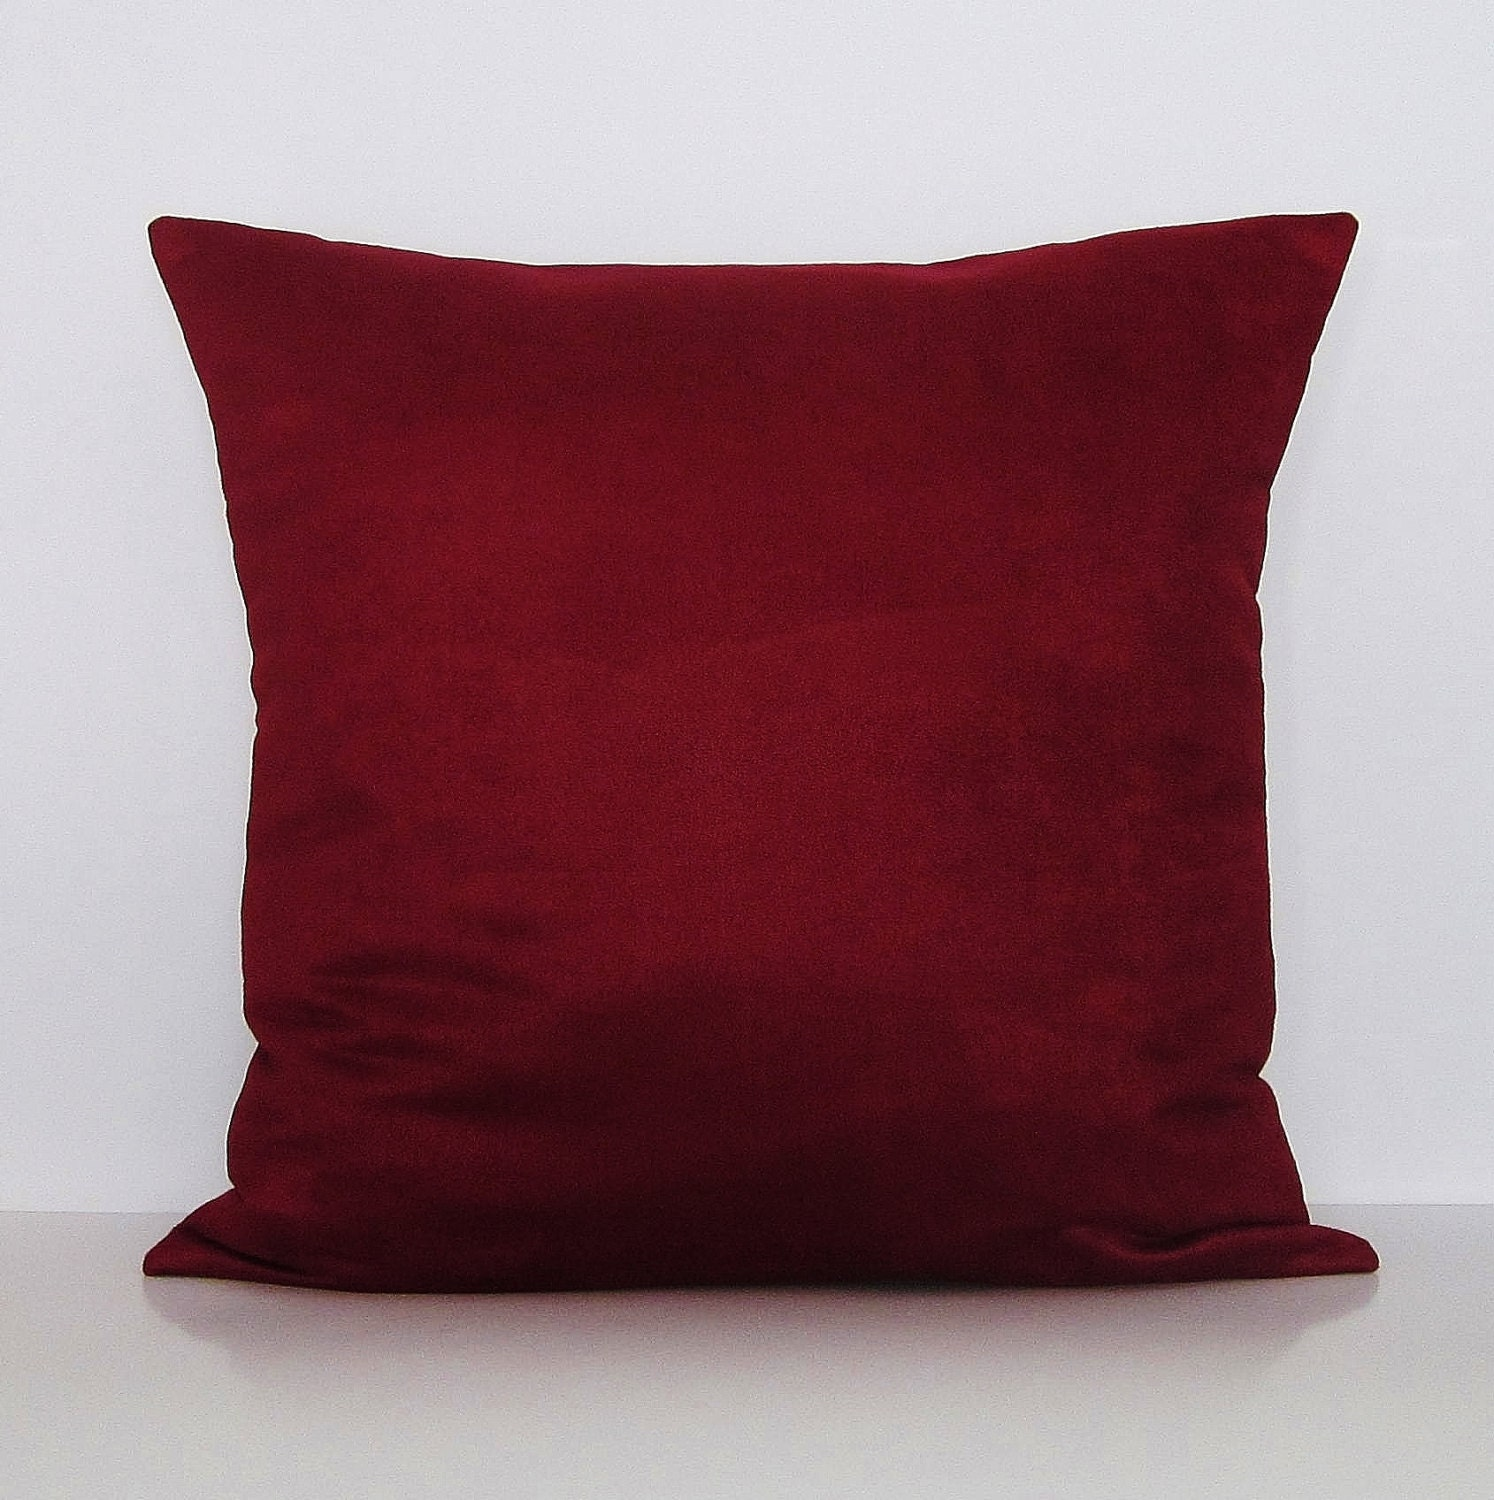 Burgundy Microfiber Throw Pillows : Burgundy Suede Pillow Cover Burgundy Throw Pillow Cover